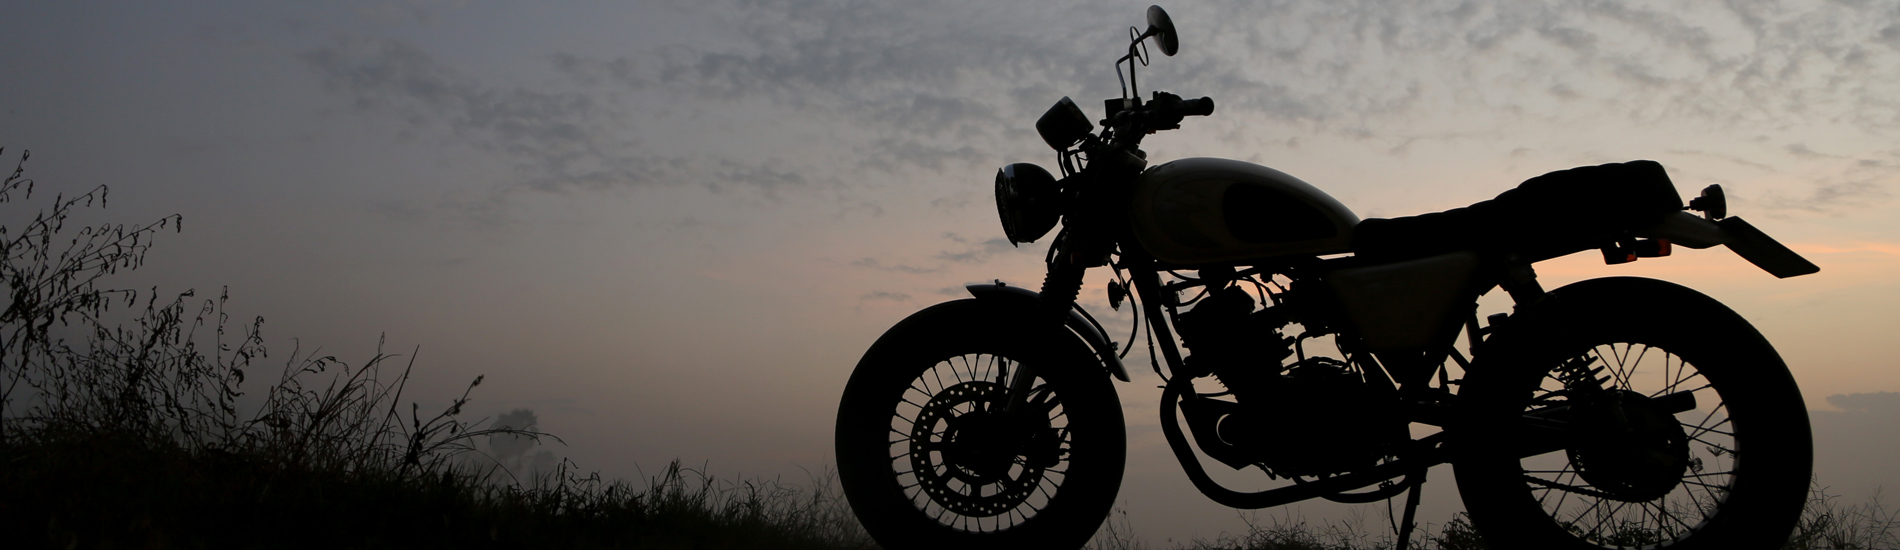 Celebrating Motorcycling History in Canada